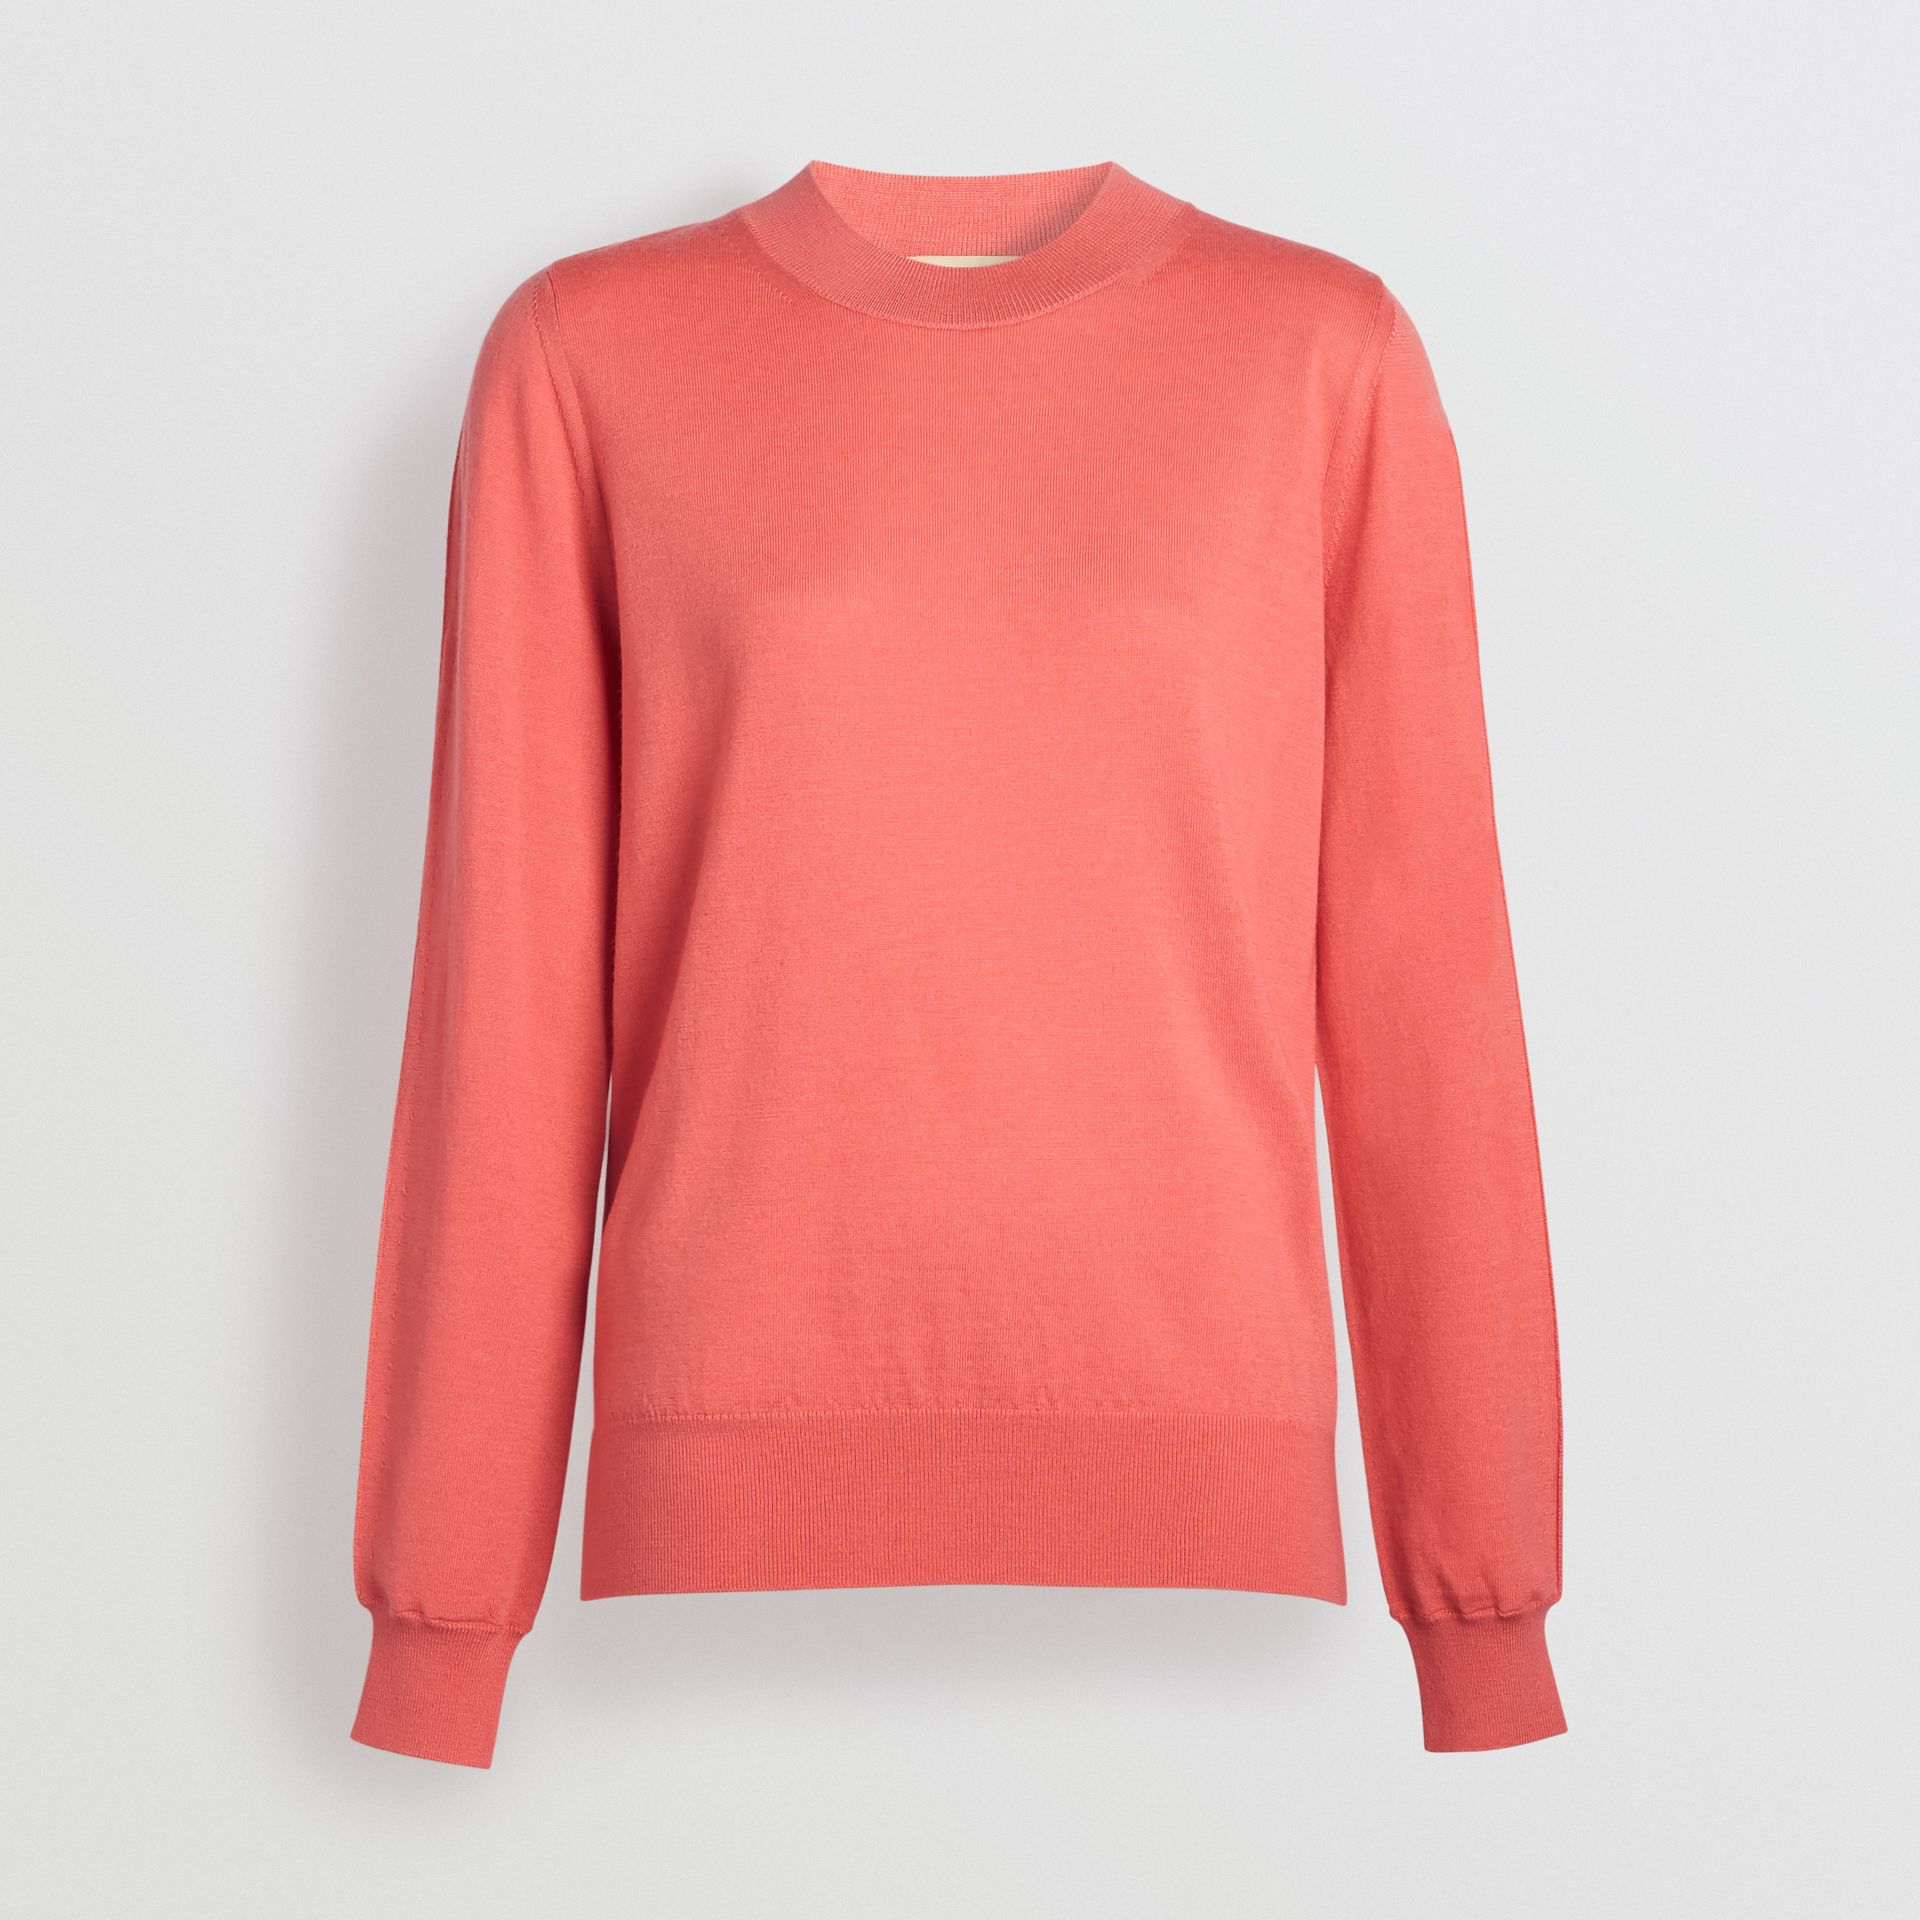 Merino Wool Crew Neck Sweater in Coral - Women | Burberry - gallery image 3